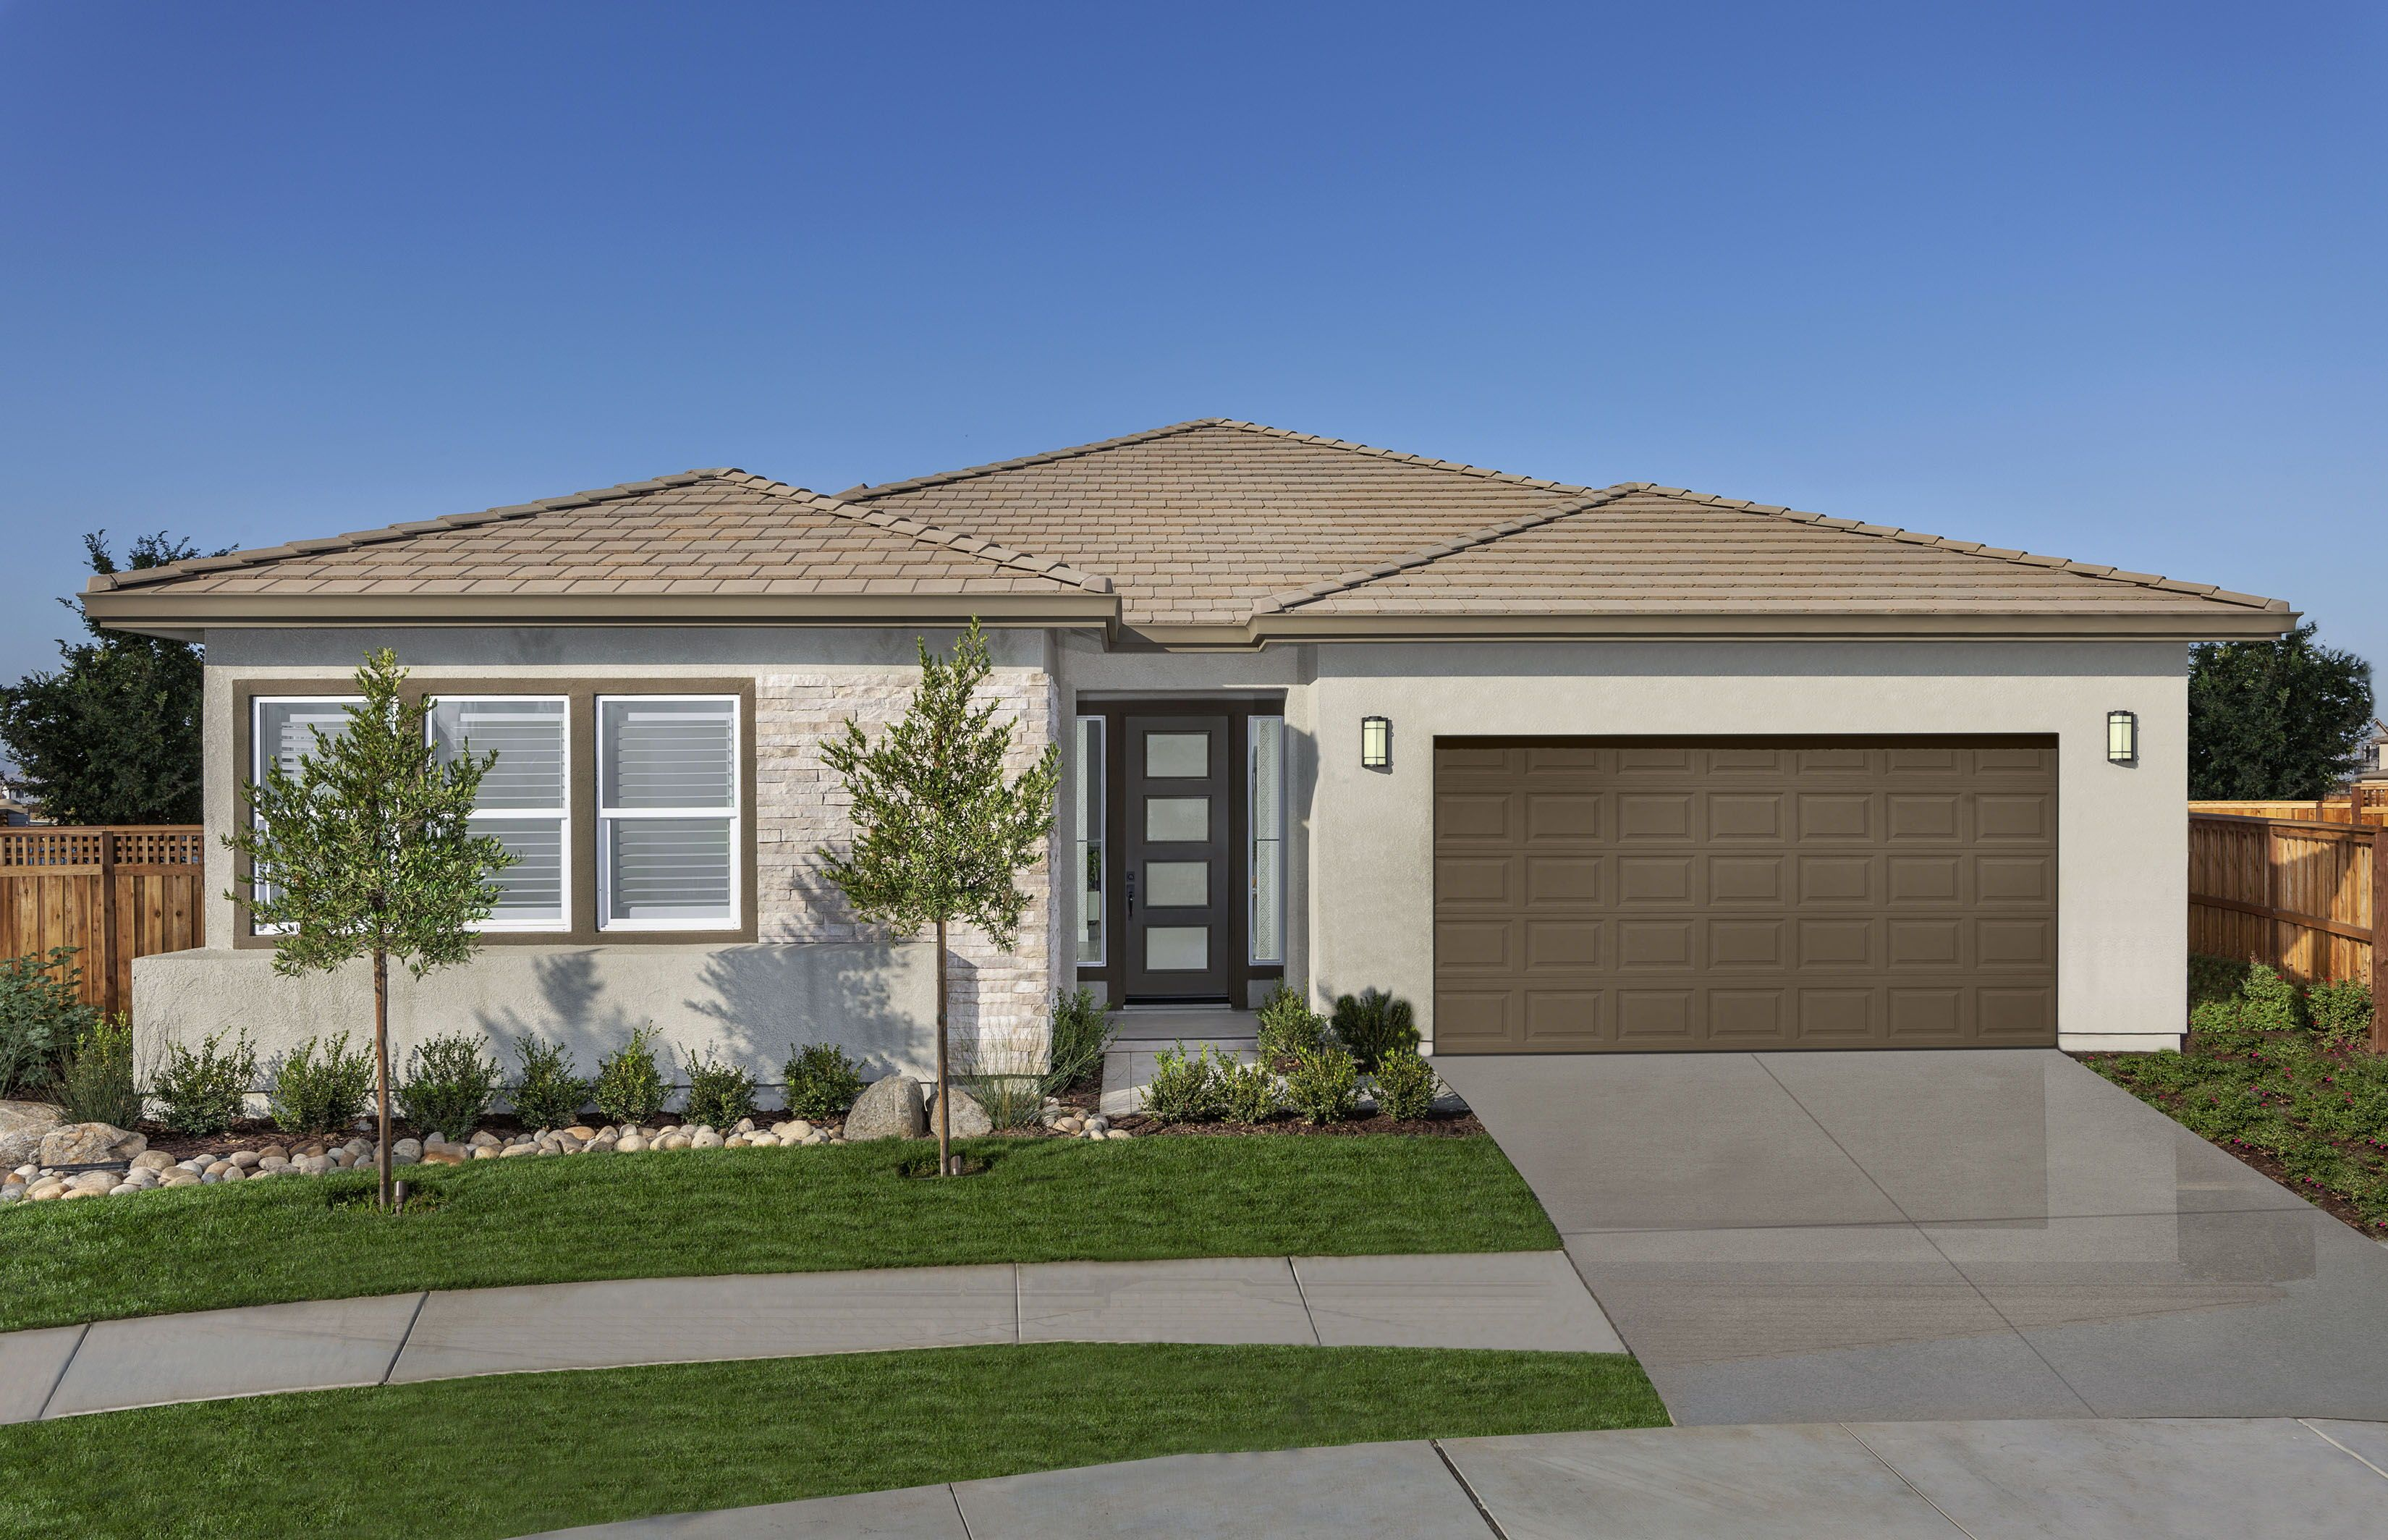 Residence 1 Exterior | Newport by Kiper Homes | River Islands in Lathrop, CA   #RiverIslands #RiverIslandsLathrop #RiverIslandsCA #RiverIslandsCommunity #CommunityAtRiverIslands #NorCal #NorCalRealEstate #NorCalLiving #BayAreaHomes #BayAreaRealEstate #NorCalHomes #LakeLife #LakeLifeAtRiverIslands #LakeLifeInspiration #RiverIslandsLife #LifeAtRiverIslands